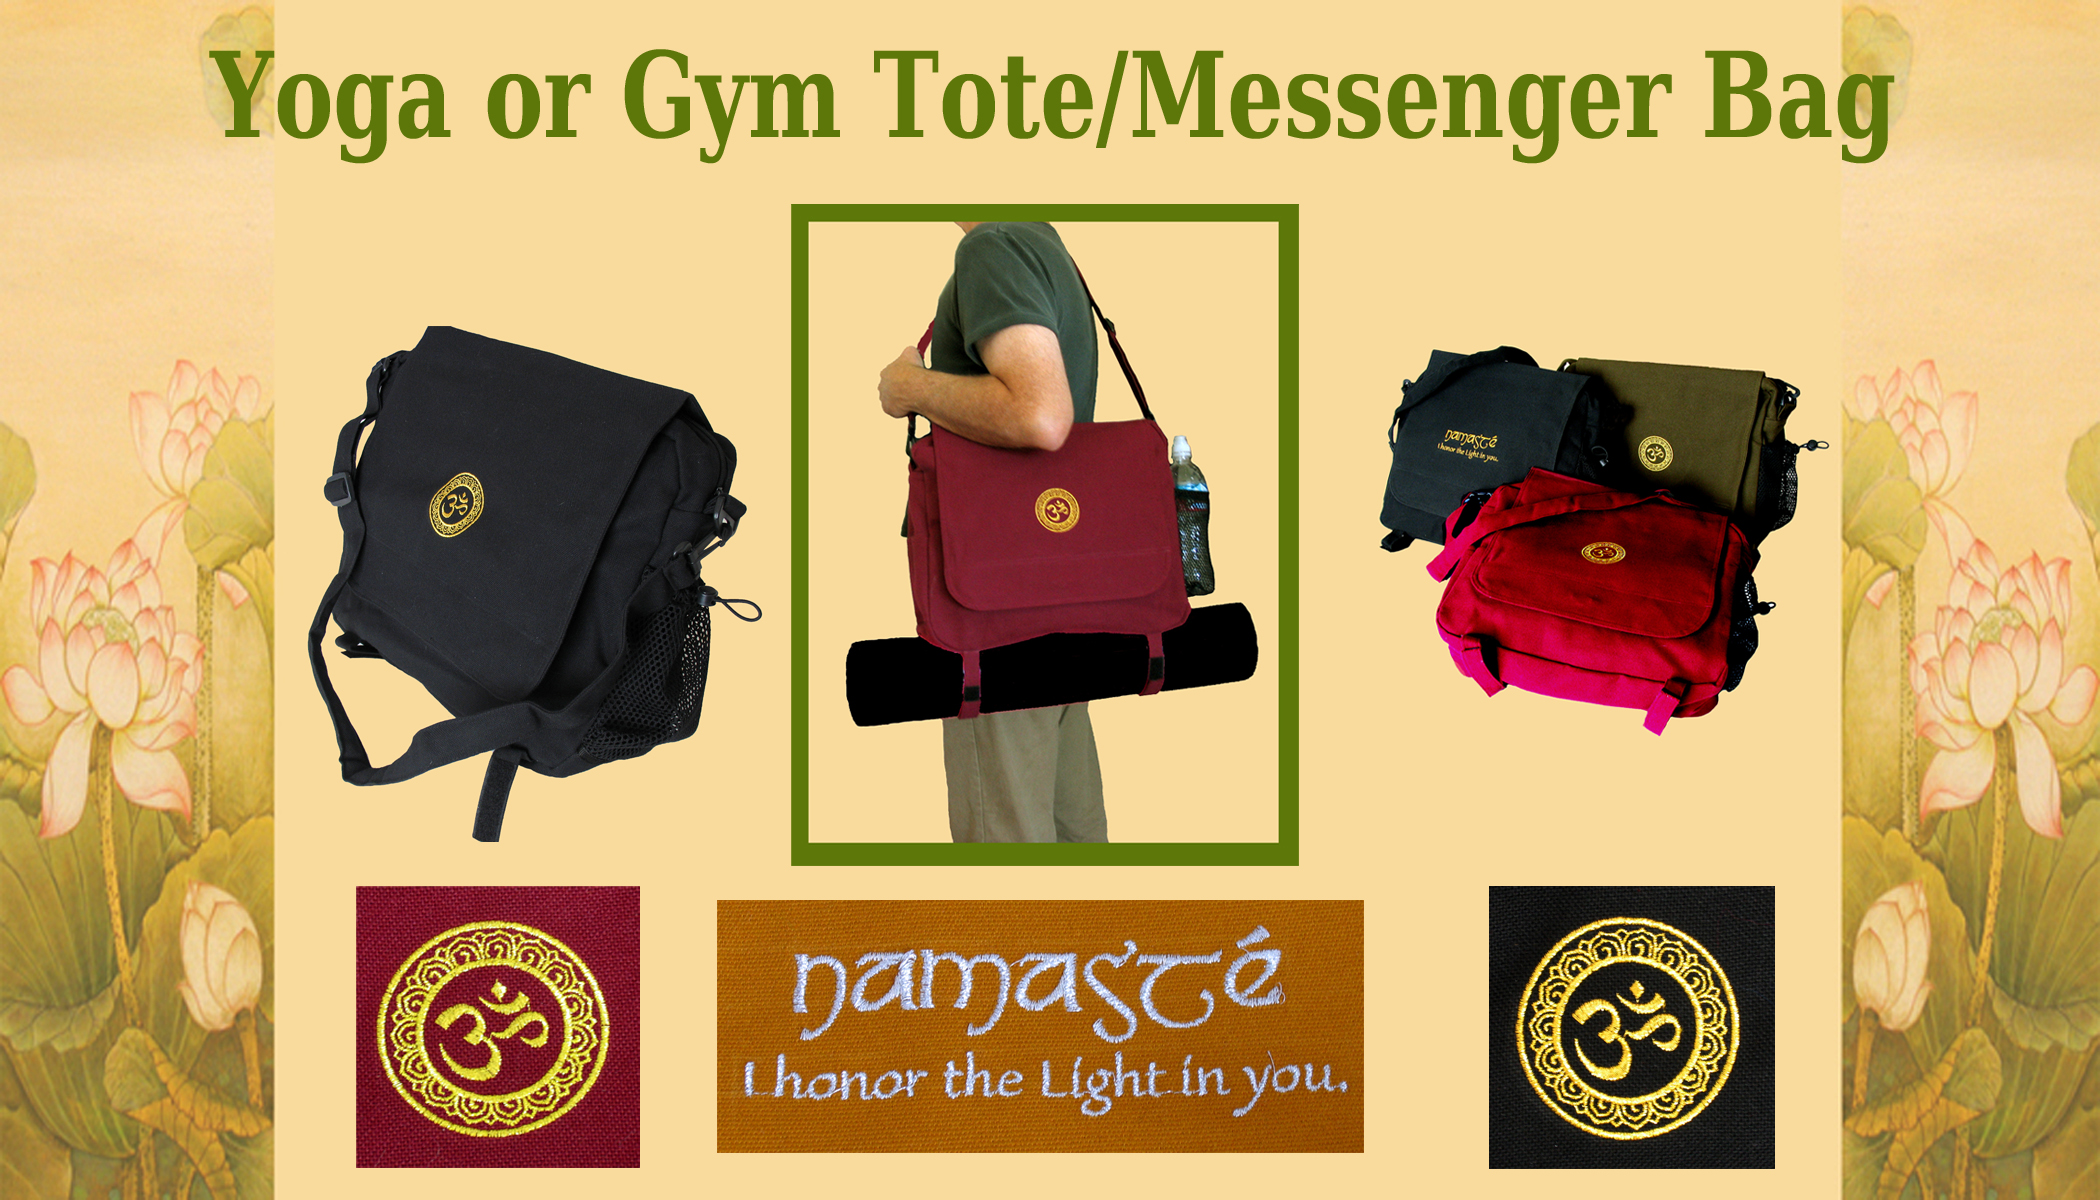 the-yoga-messenger-bag.jpg